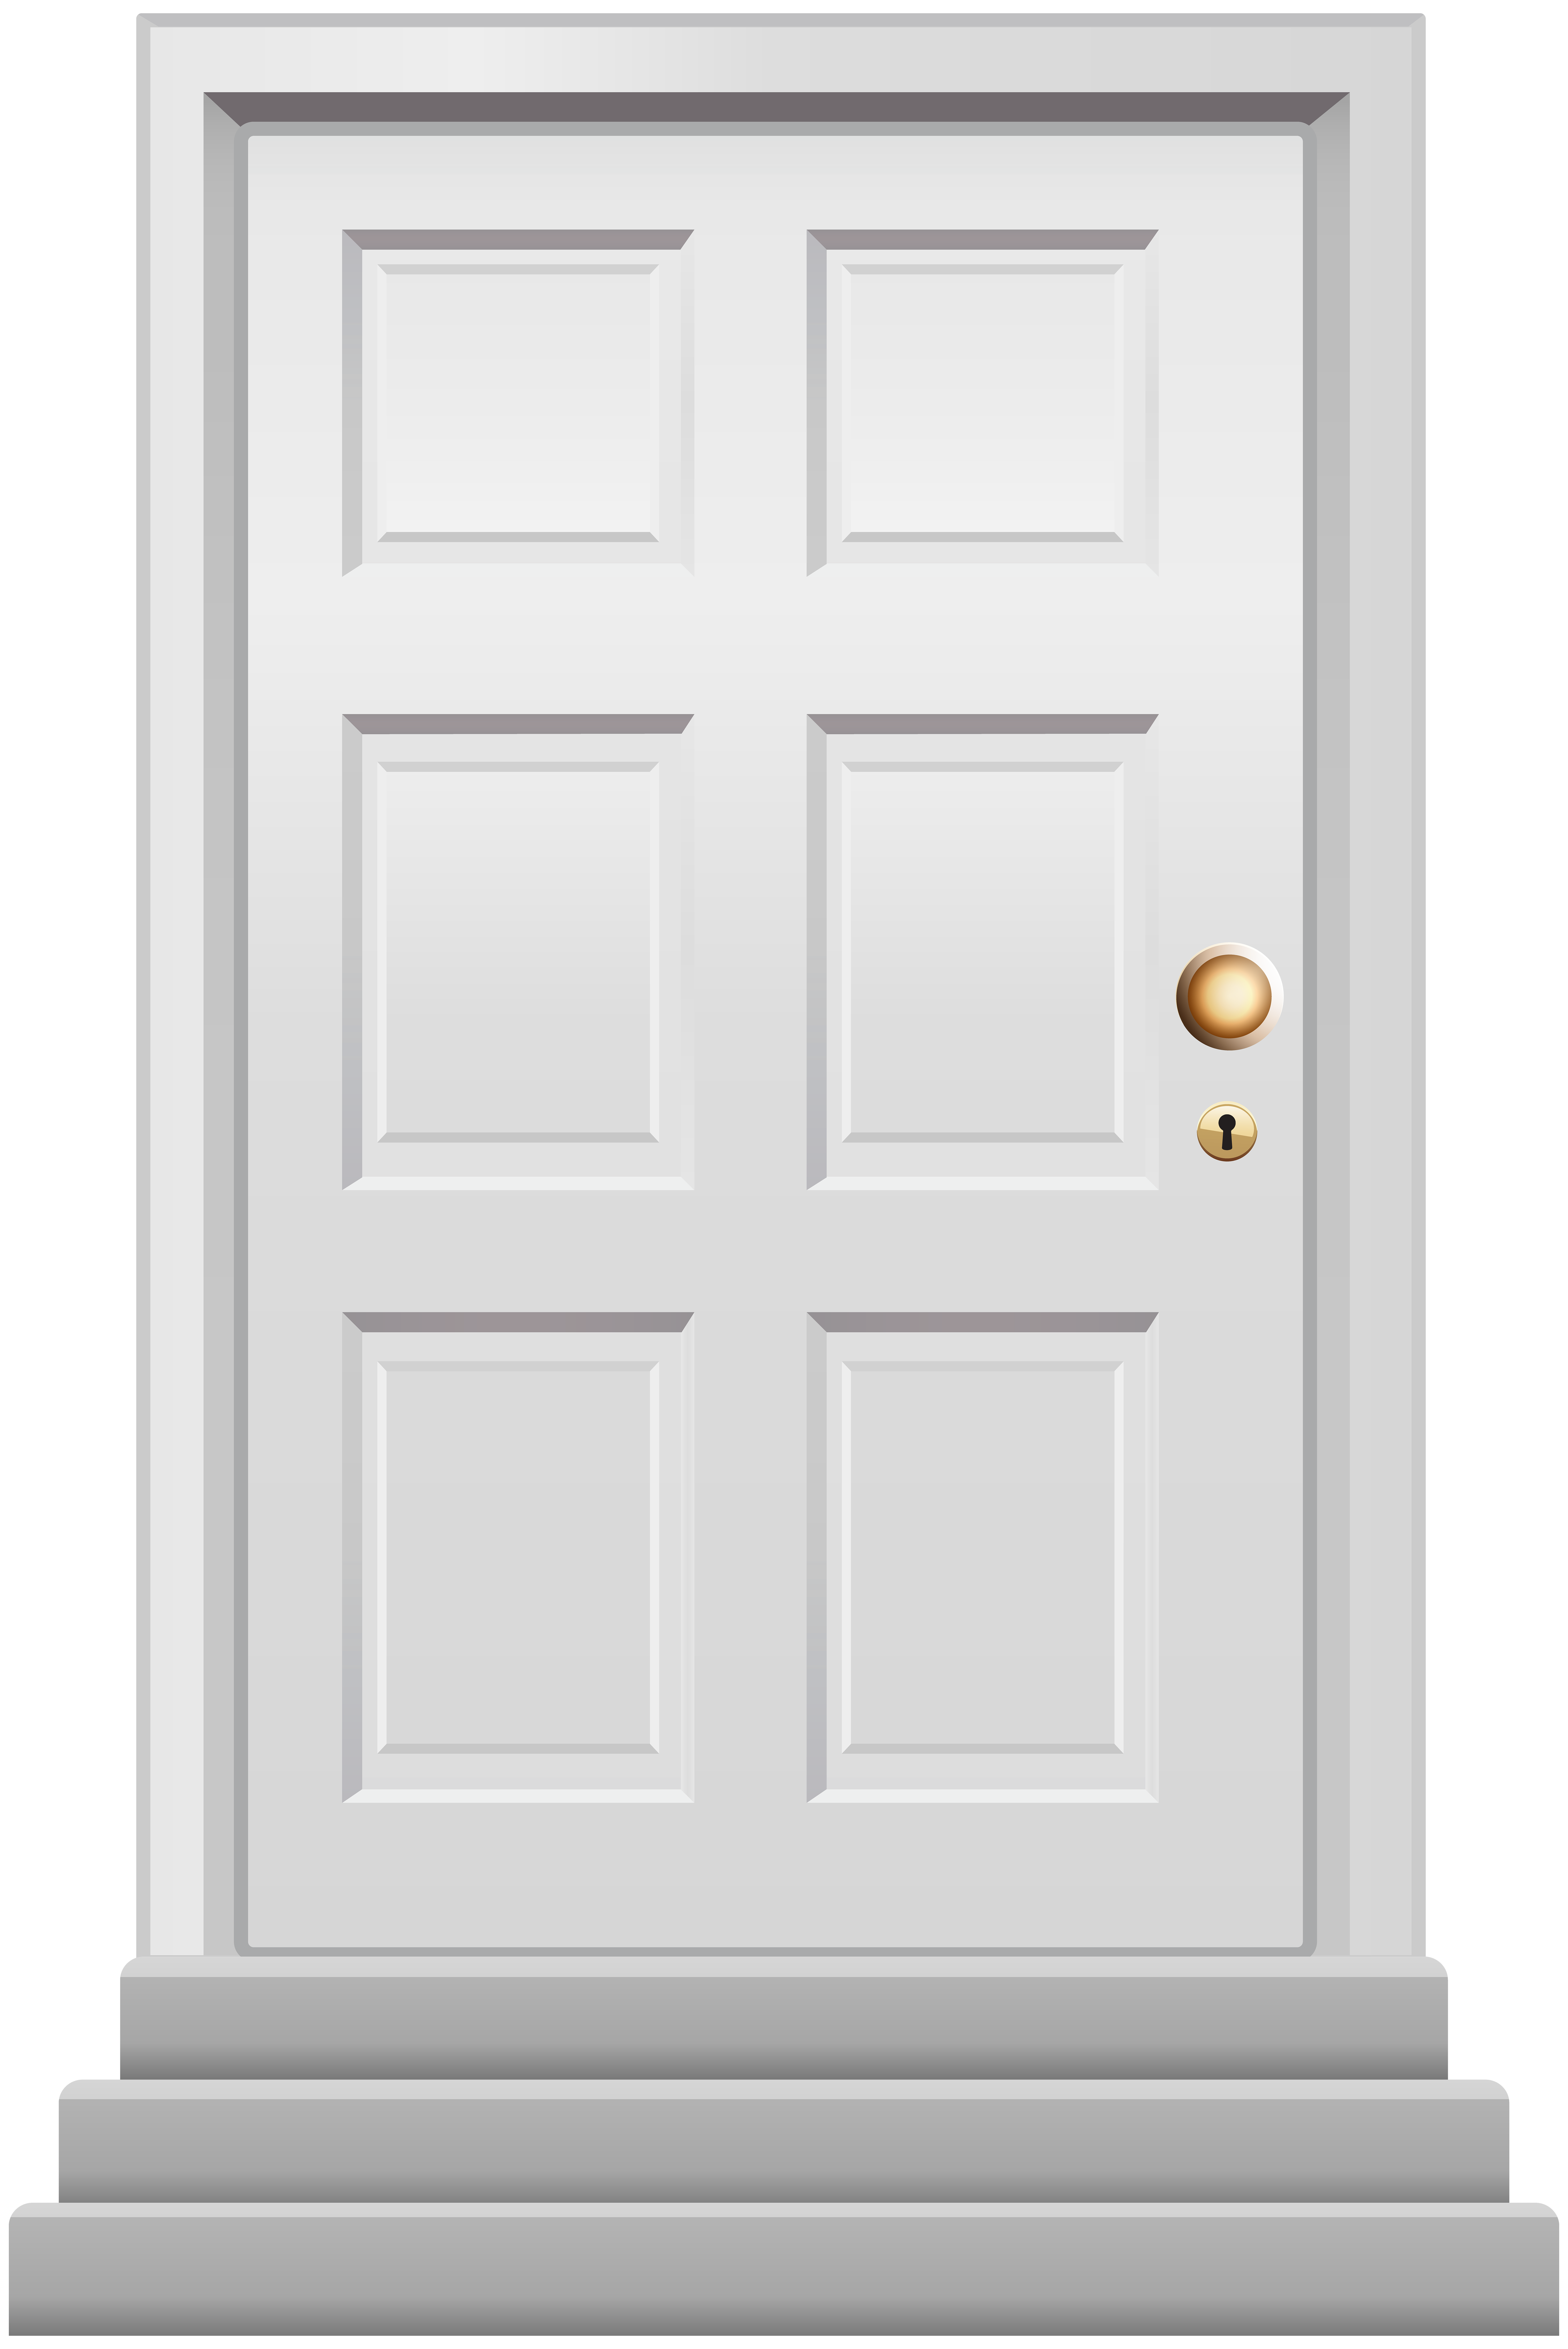 clipart library stock Door white png clip. Supermarket clipart front